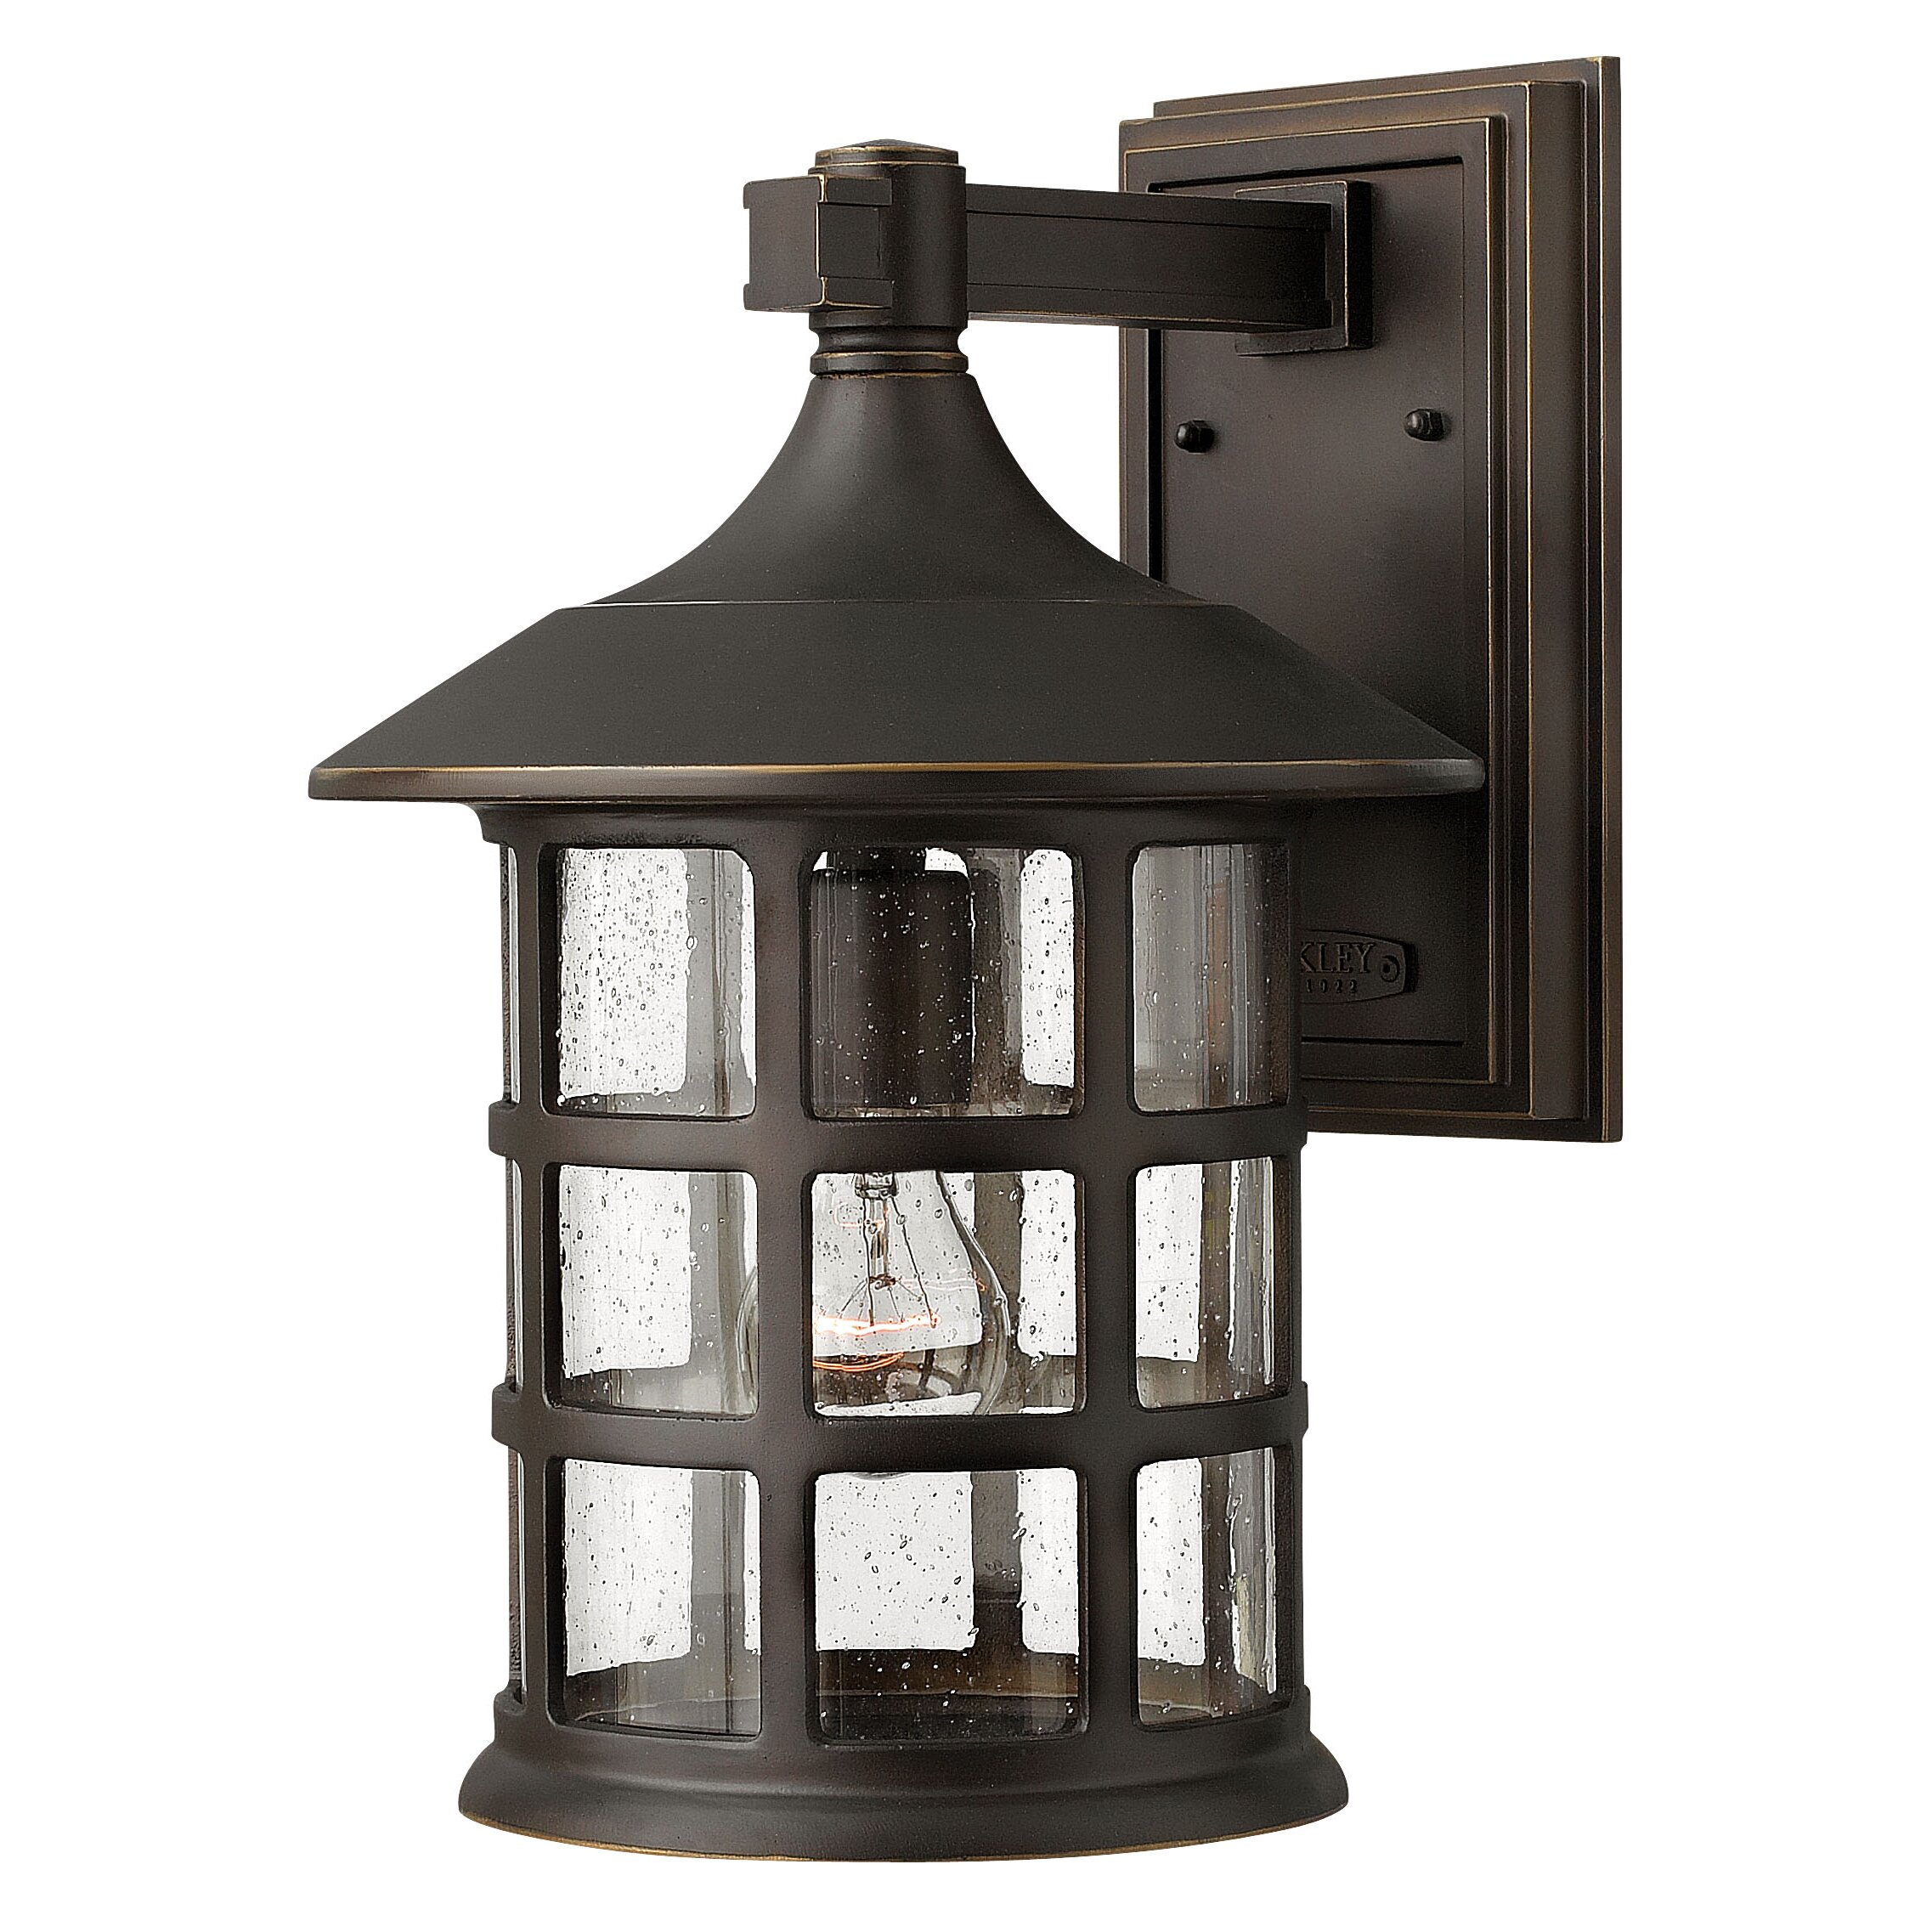 Wayfair External Wall Lights : Hinkley Lighting Freeport 1 Light Outdoor Wall Lantern & Reviews Wayfair